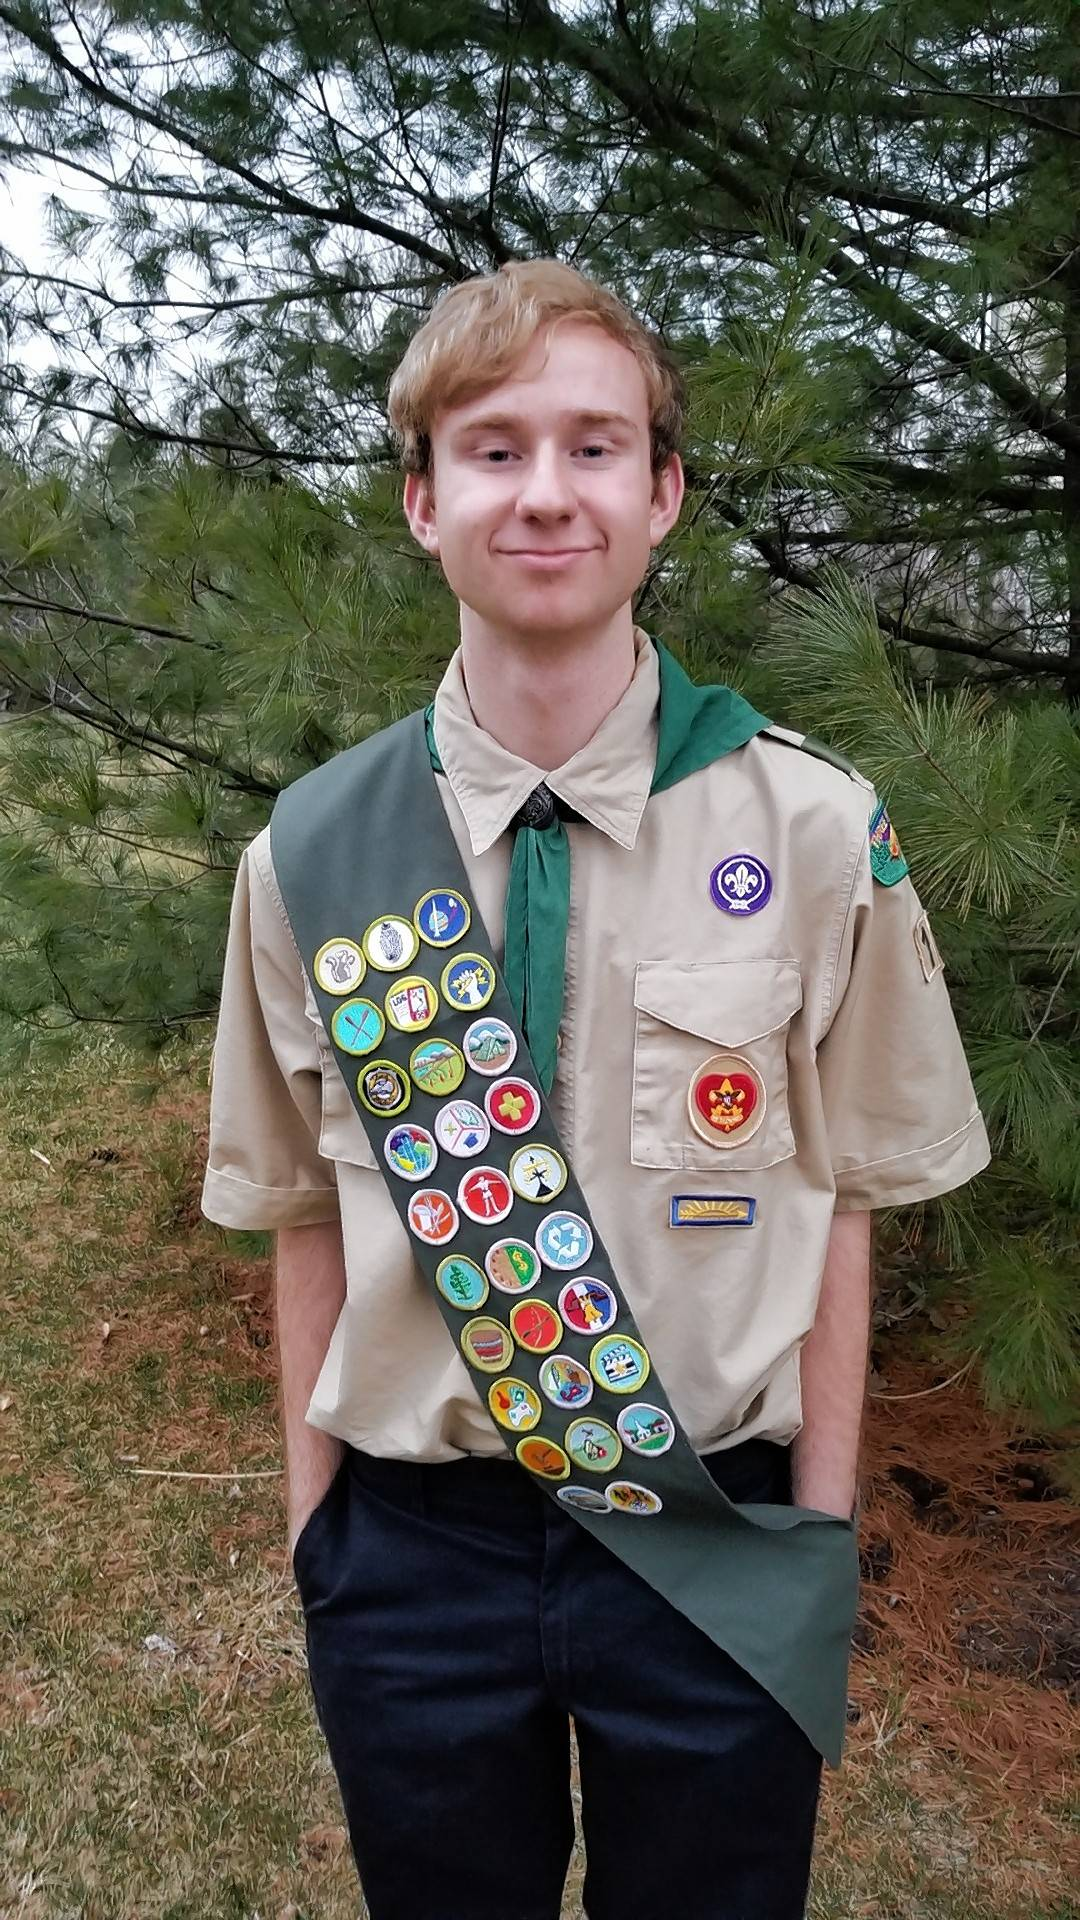 Connor David Jacobs will receive the rank of Eagle Scout at a June 17 ceremony with Boy Scout Troop 10.